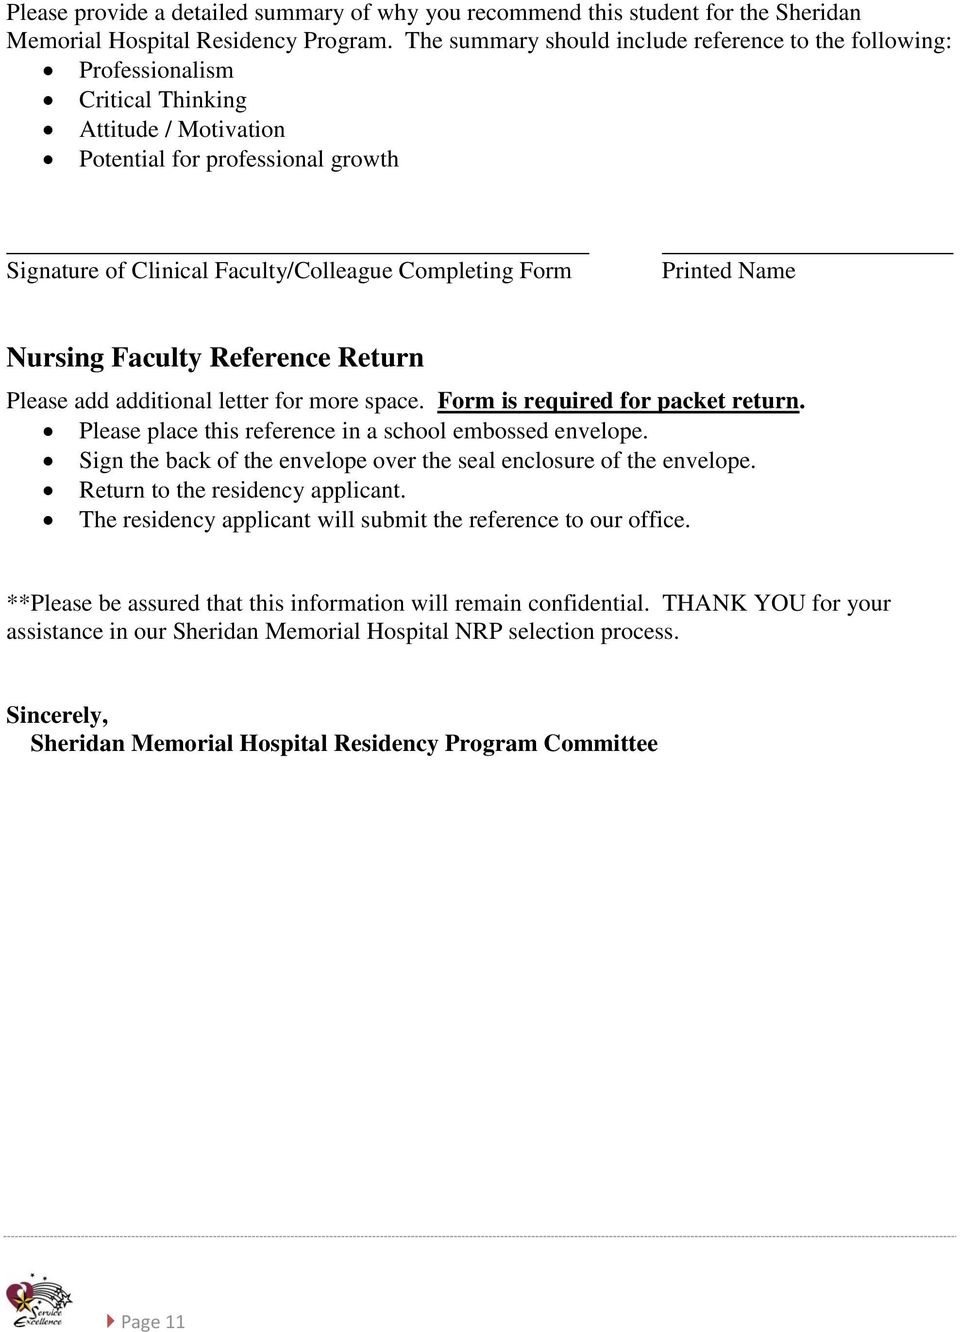 Form Printed Name Nursing Faculty Reference Return Please add additional letter for more space. Form is required for packet return. Please place this reference in a school embossed envelope.